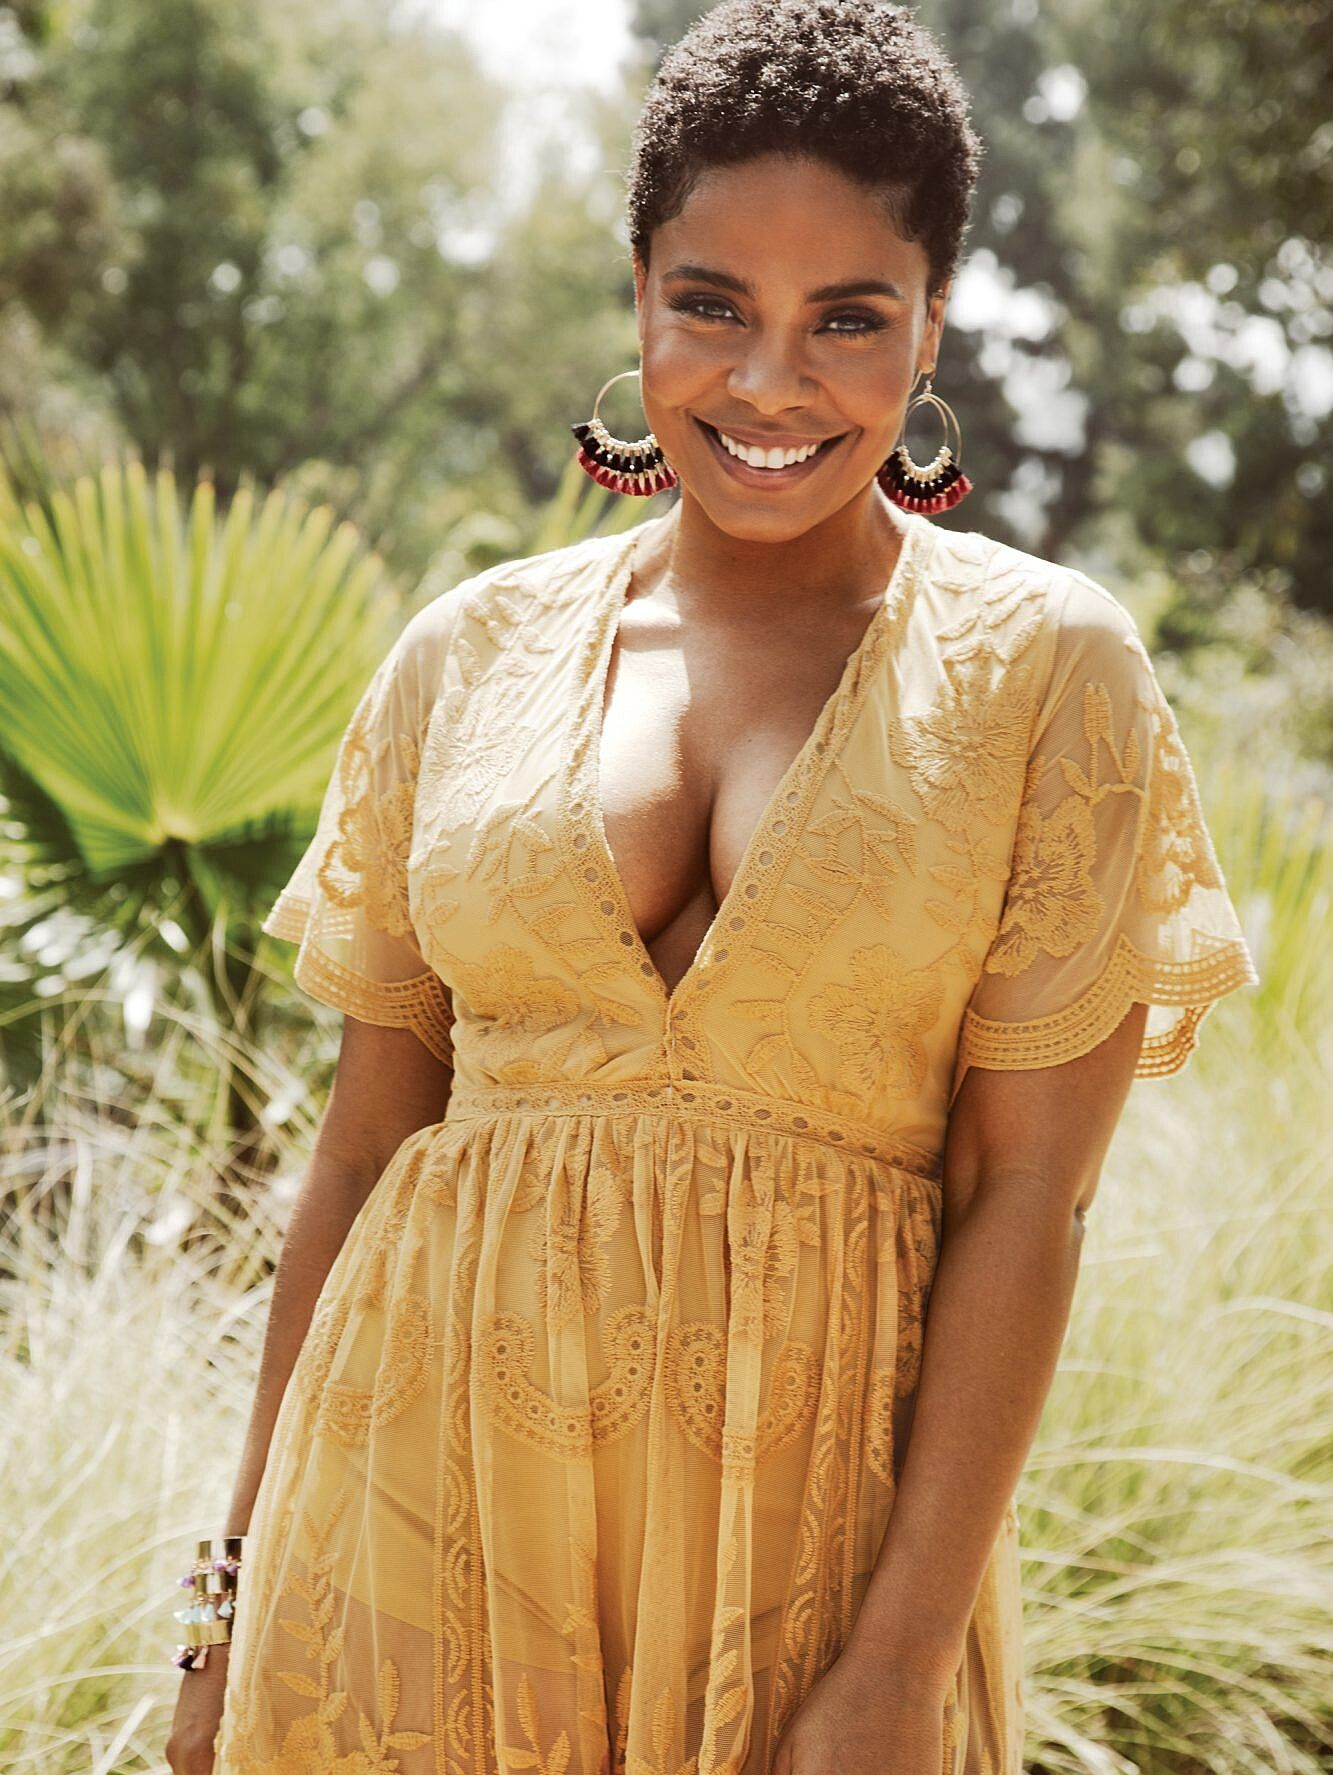 Sanaa Lathan Talks Self Care Body Image And That Bizarre Beyonce Biting Rumor In 2020 Natural Hair Styles Short Natural Hair Styles Short Hair Styles